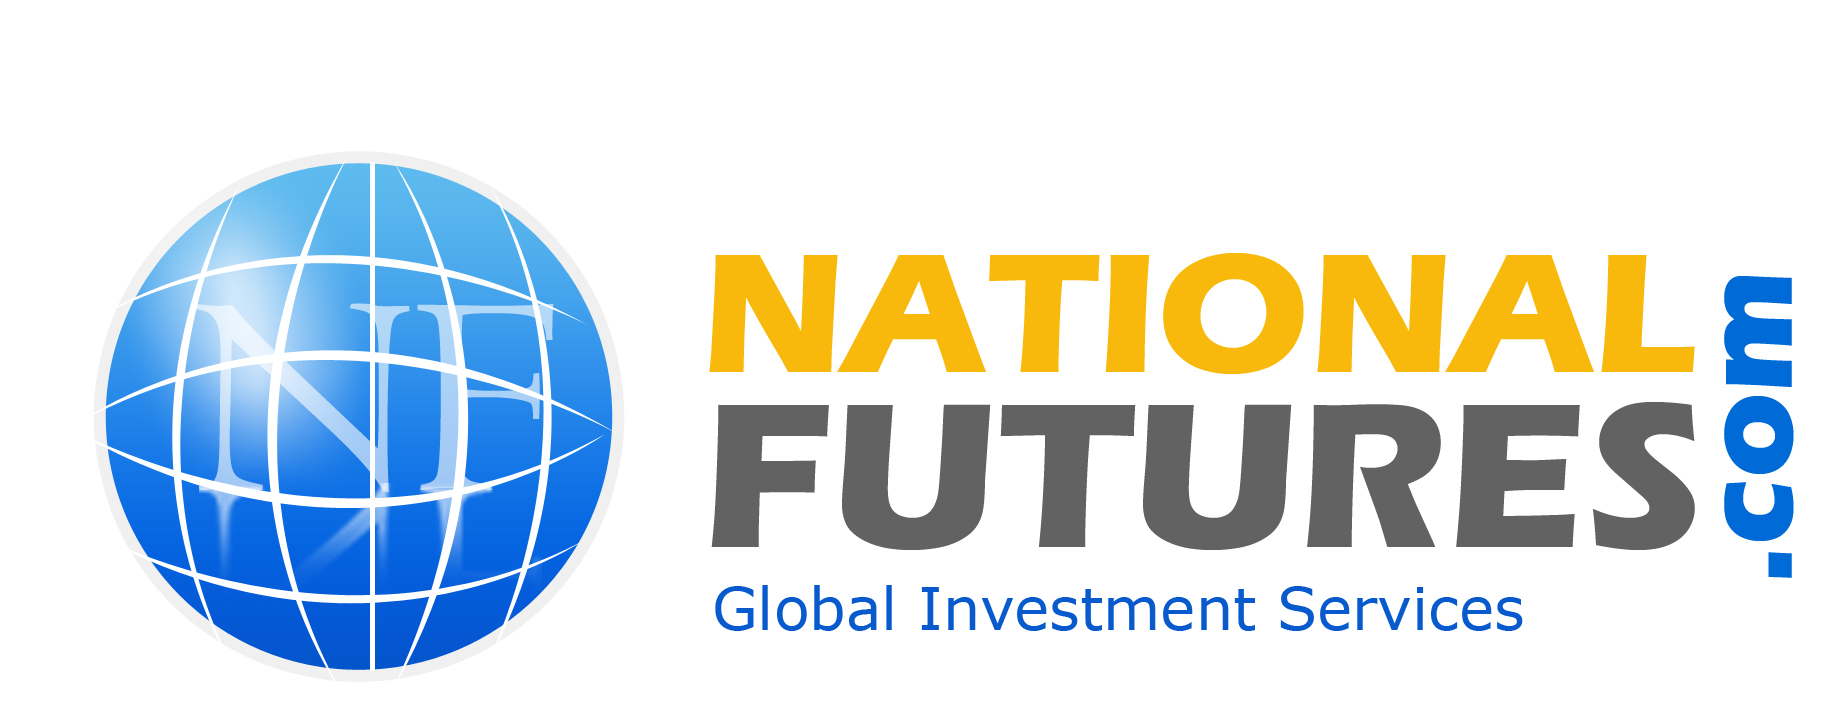 John Person's Nationalfutures.com